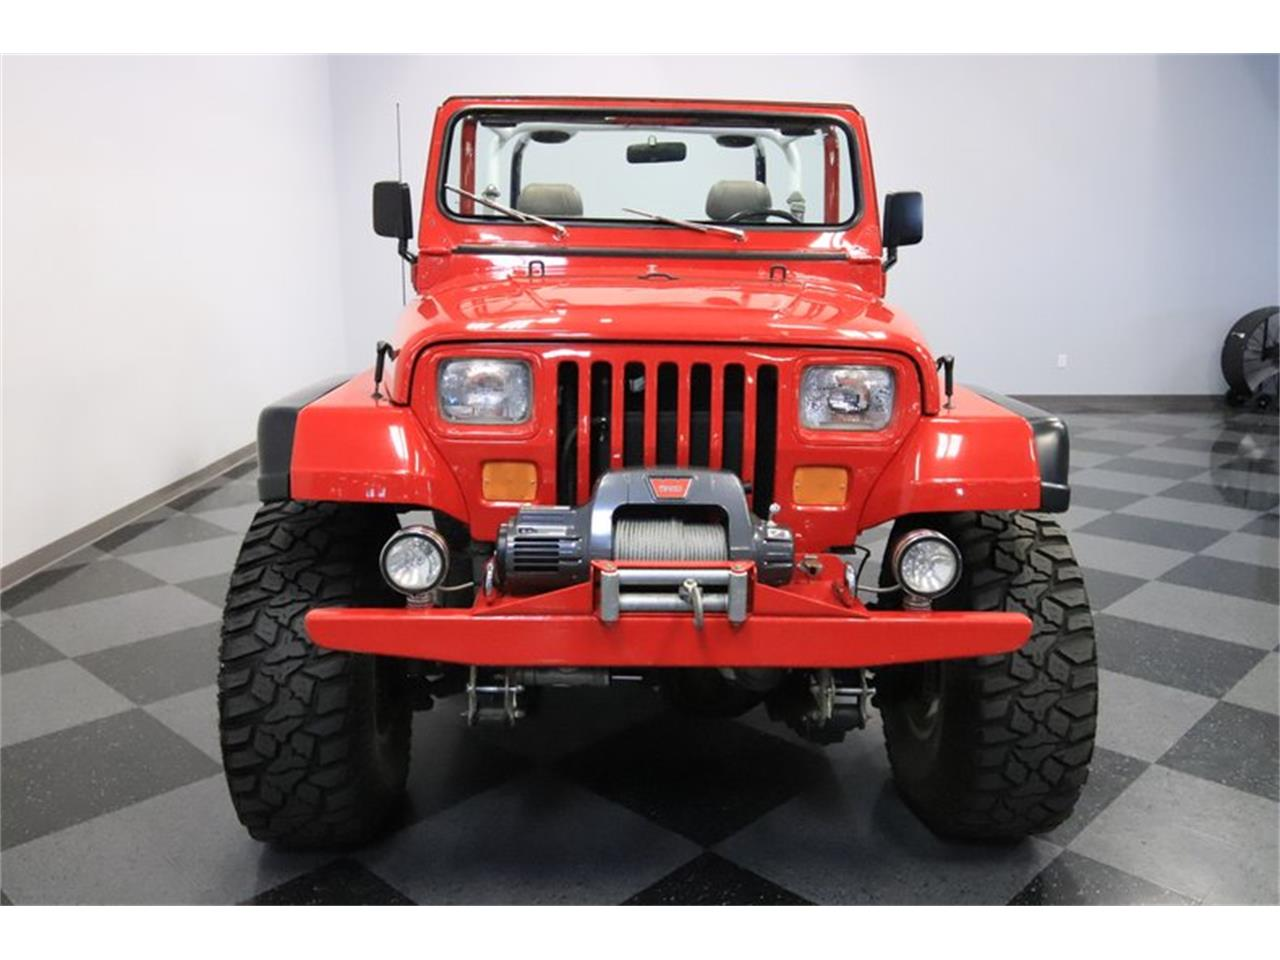 Large Picture of '83 Jeep CJ8 Scrambler - $36,995.00 Offered by Streetside Classics - Phoenix - Q5HM